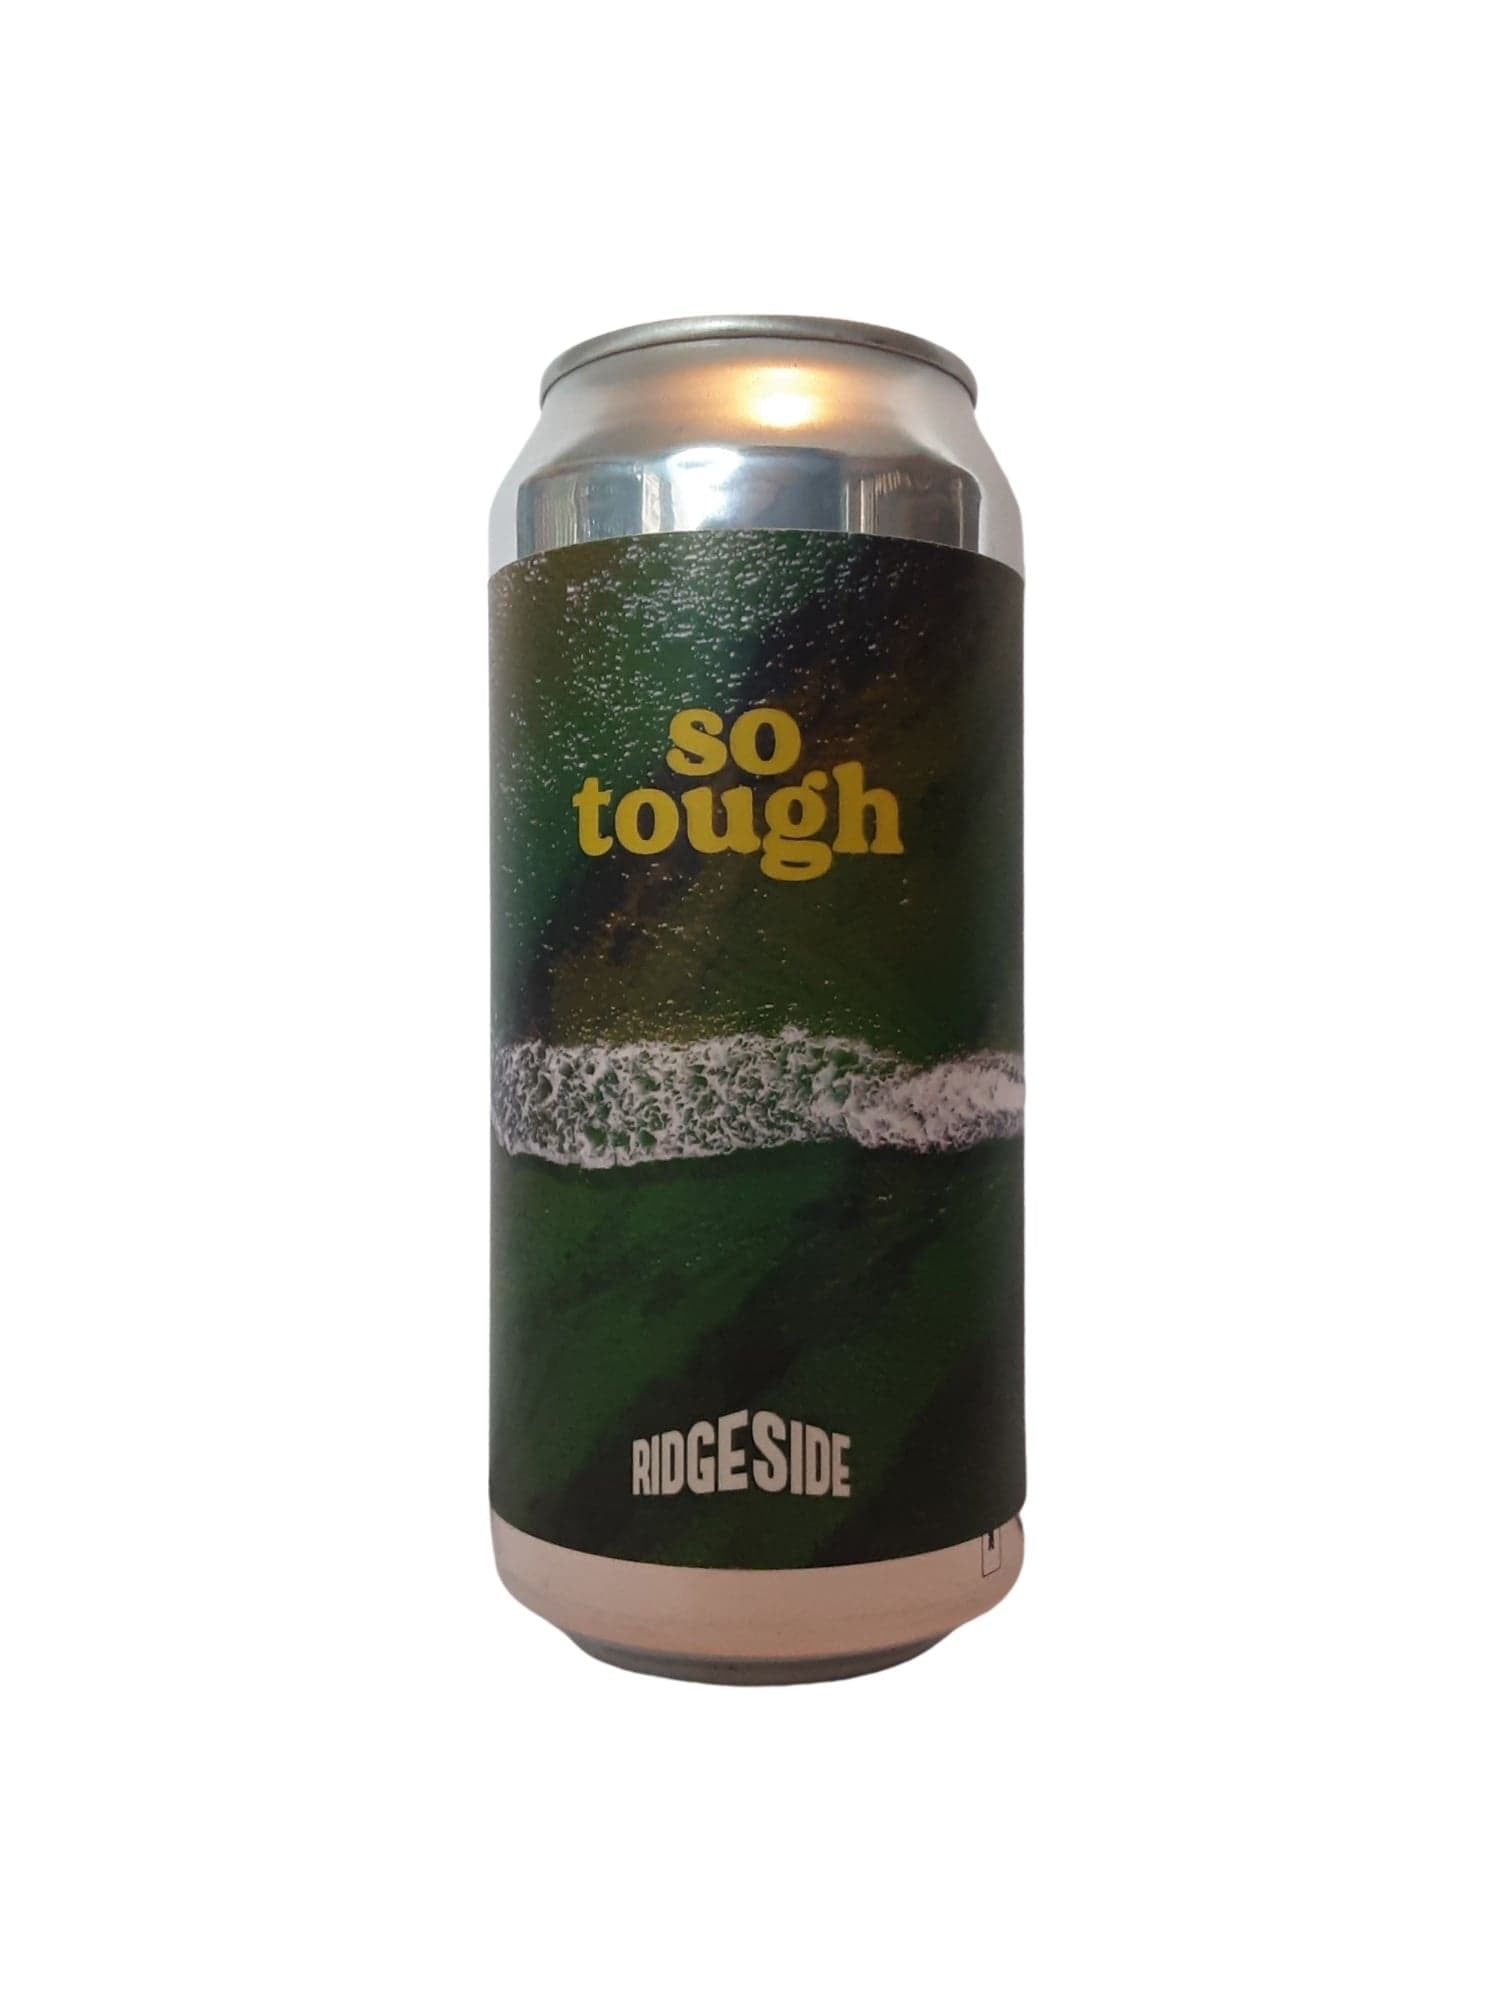 Ridgeside - So Tough - IPA - 6.6% (BRAND NEW)